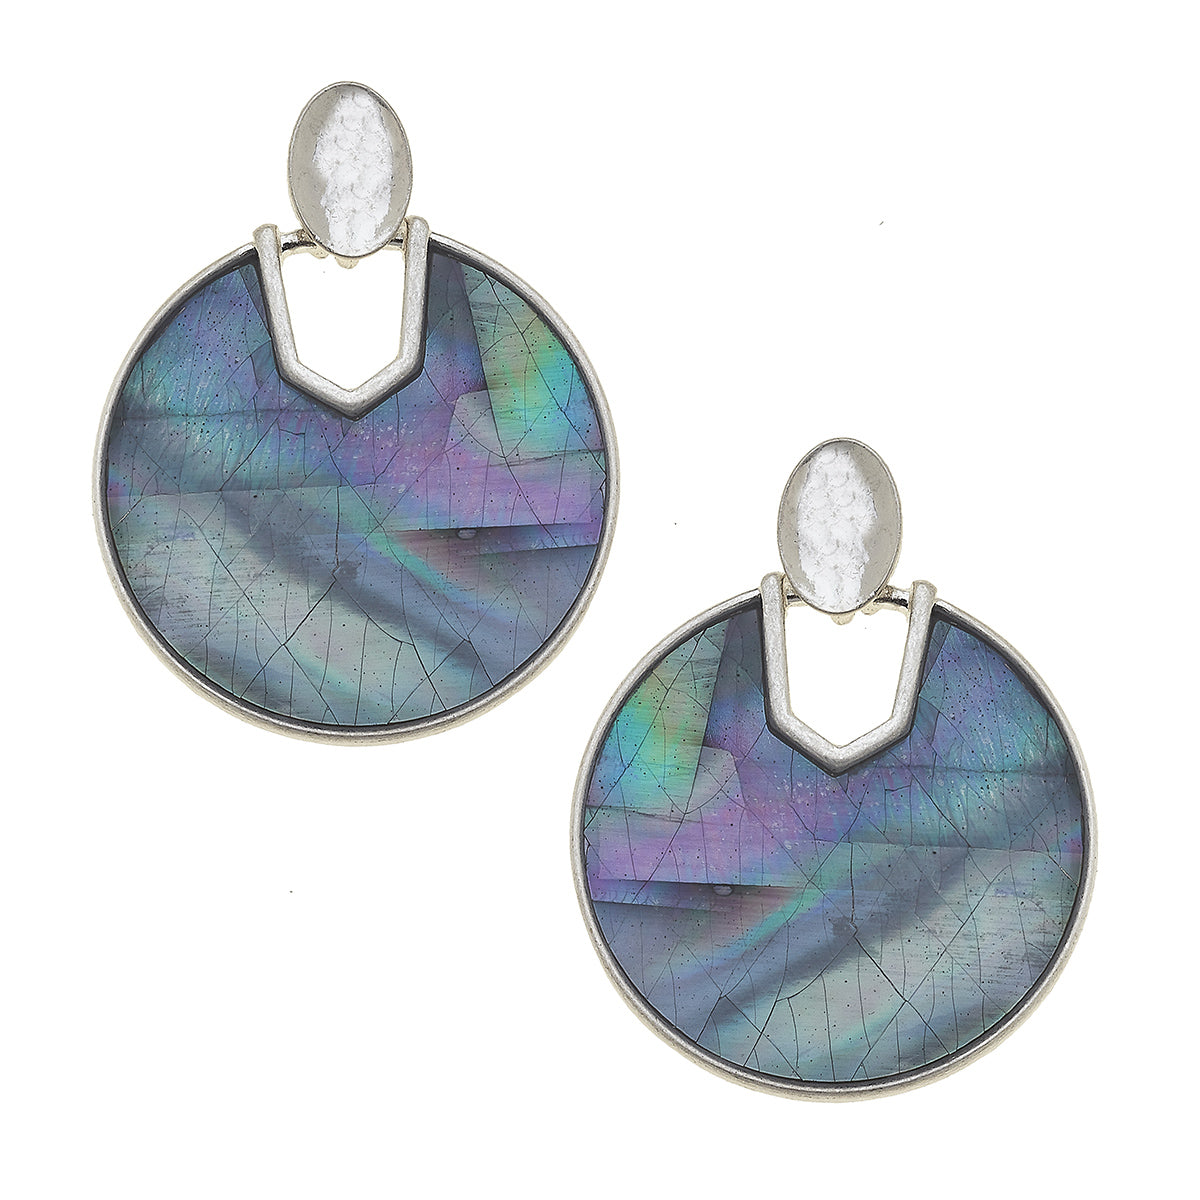 Genoa Earrings in Grey Mother of Pearl Shell